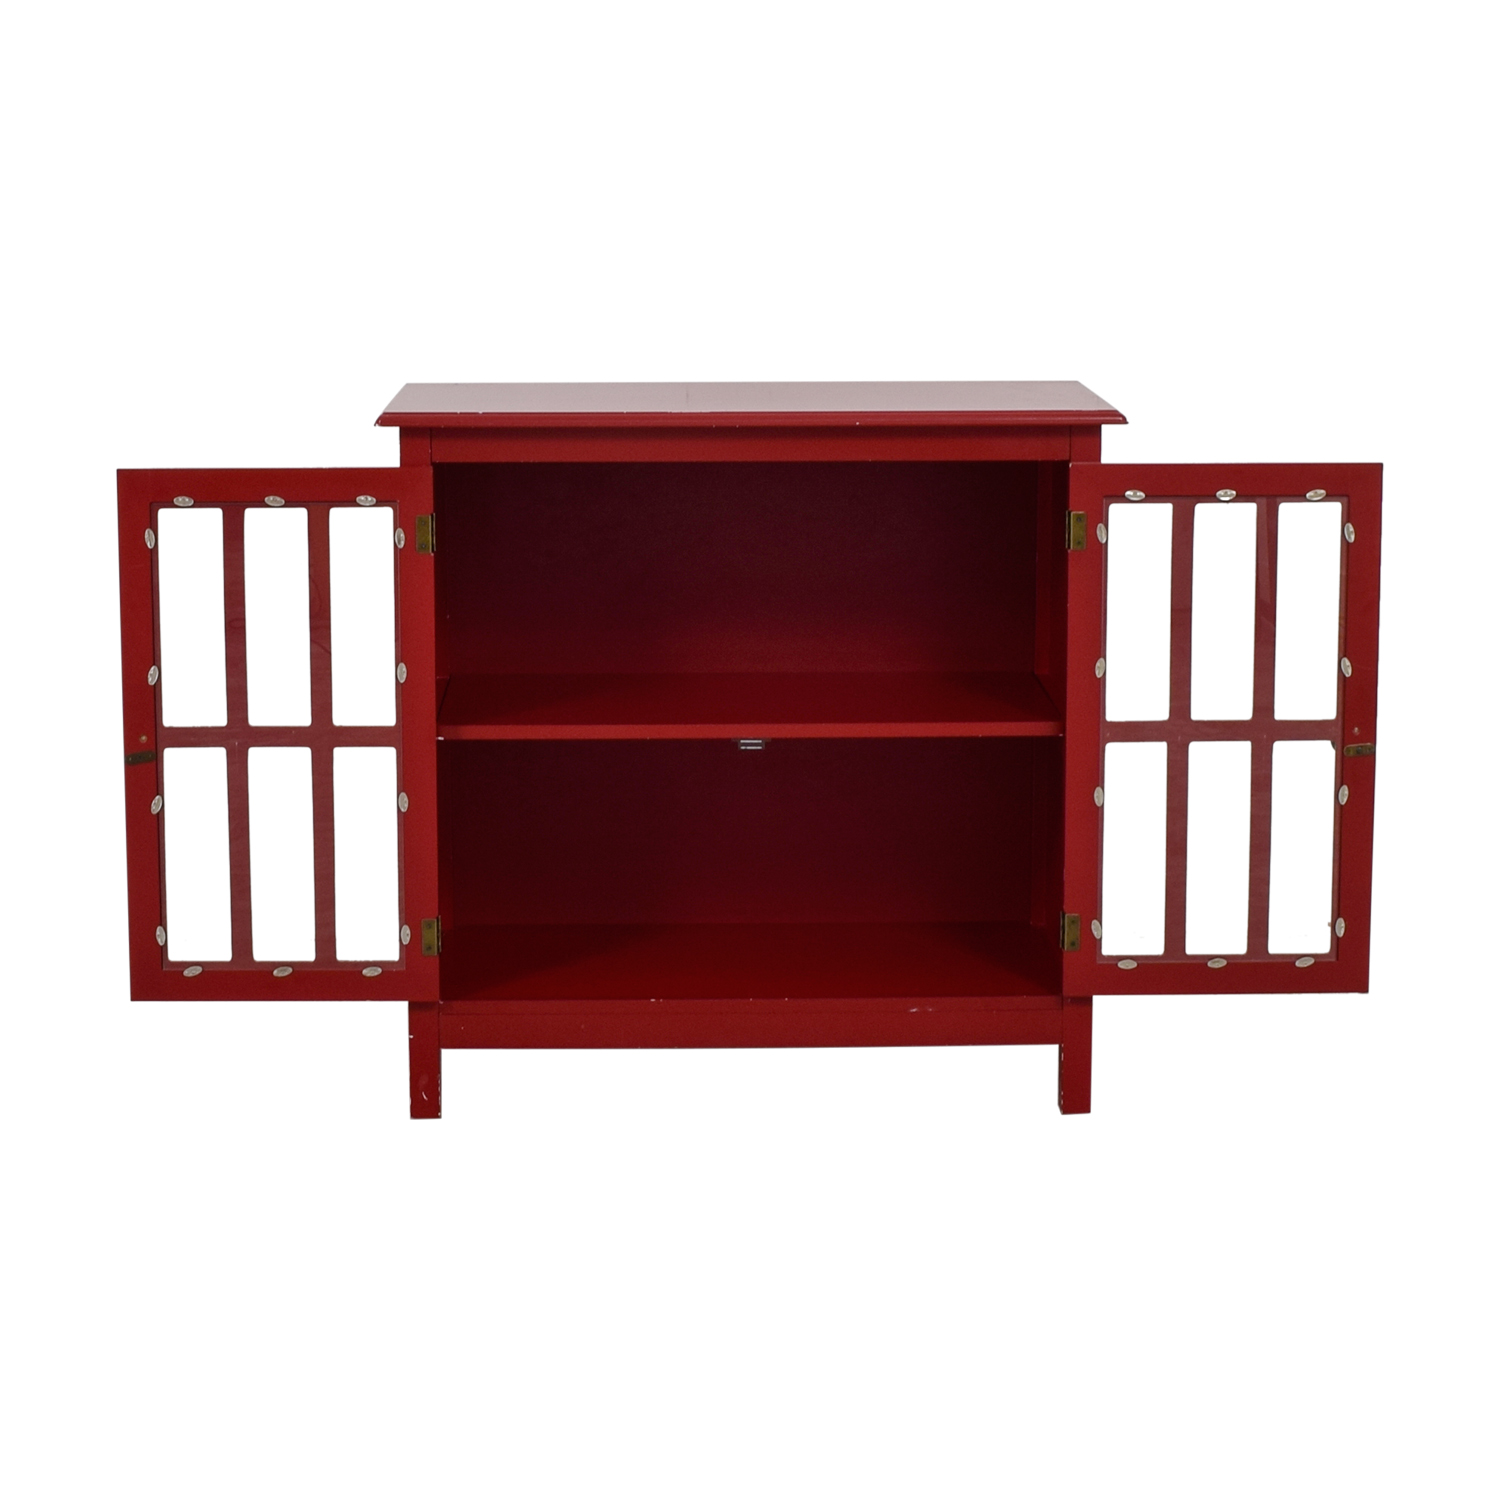 Double Door Glass Red Cabinet coupon